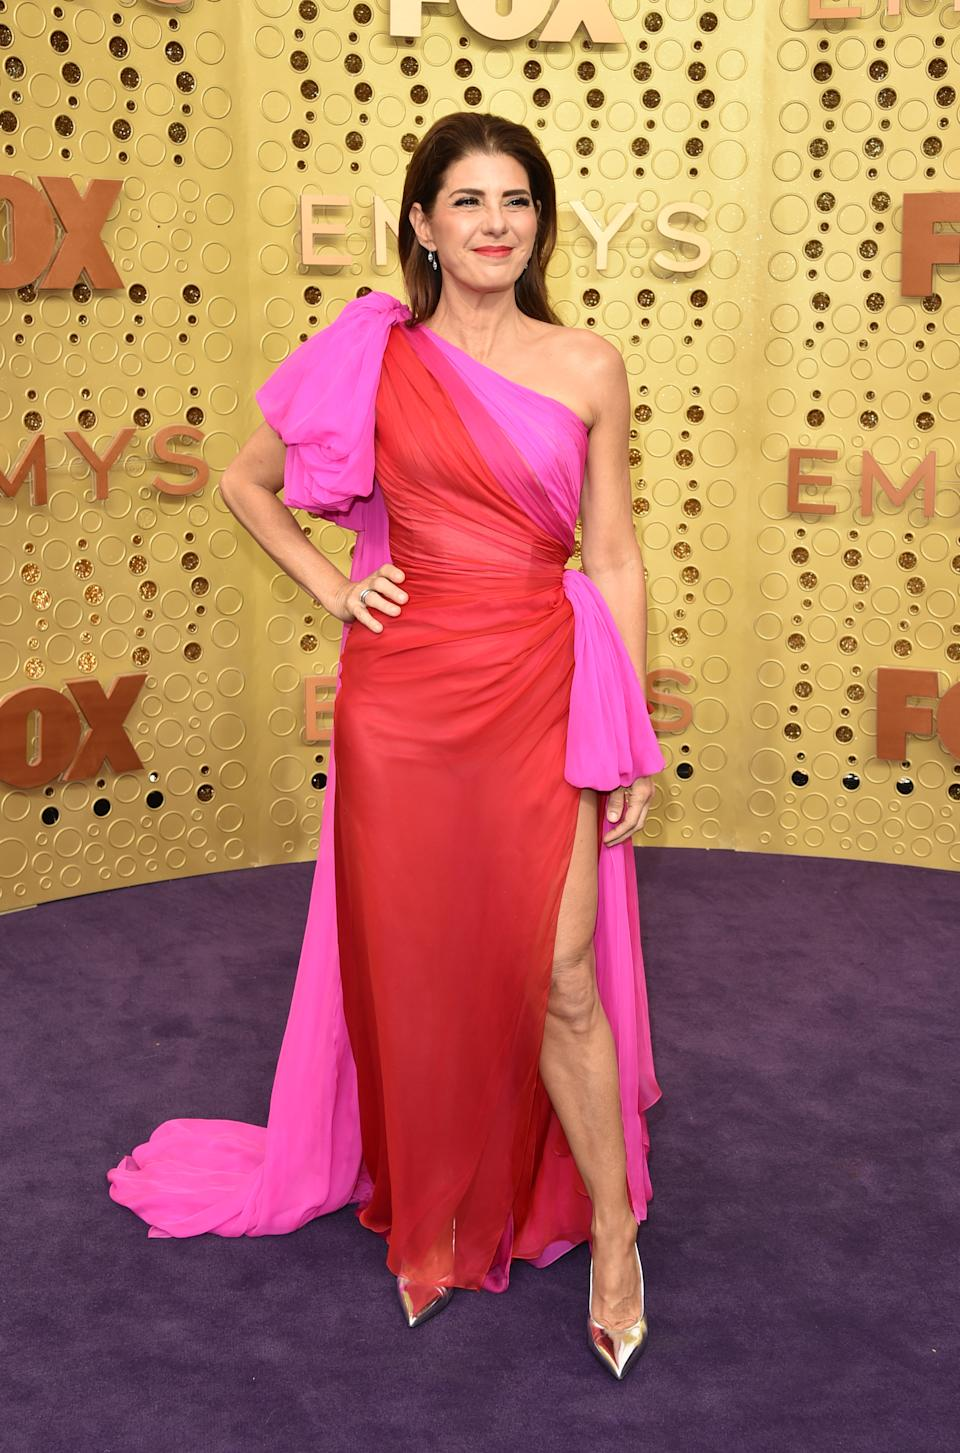 The Oscar-winning actress rocked the biggest fashion trend of the night, arriving in a pink and red asymmetrical gown with thigh-high slit. [Photo: Getty]